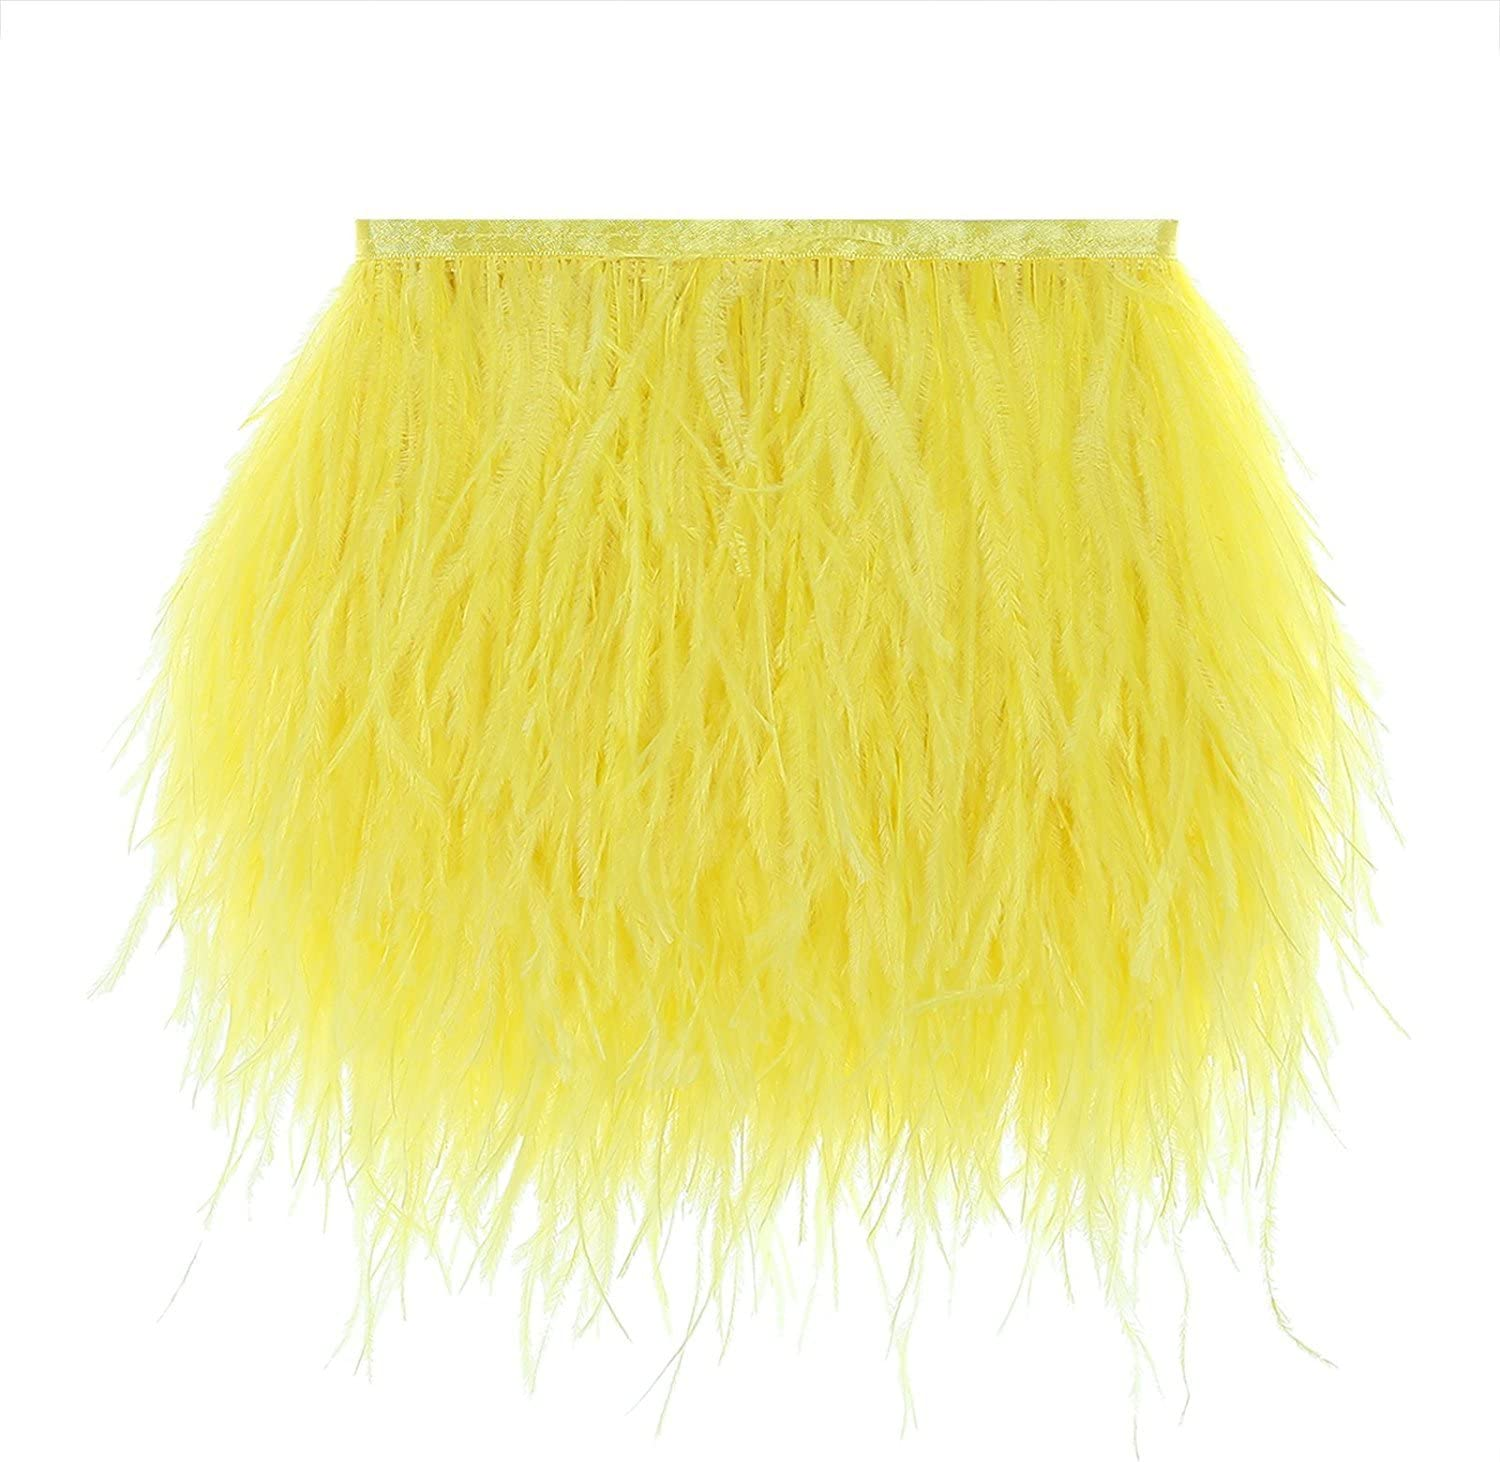 CENFRY Deluxe Pack of 10yards Columbus Mall Ostrich Dress Feathers Sewin Trims Fringe